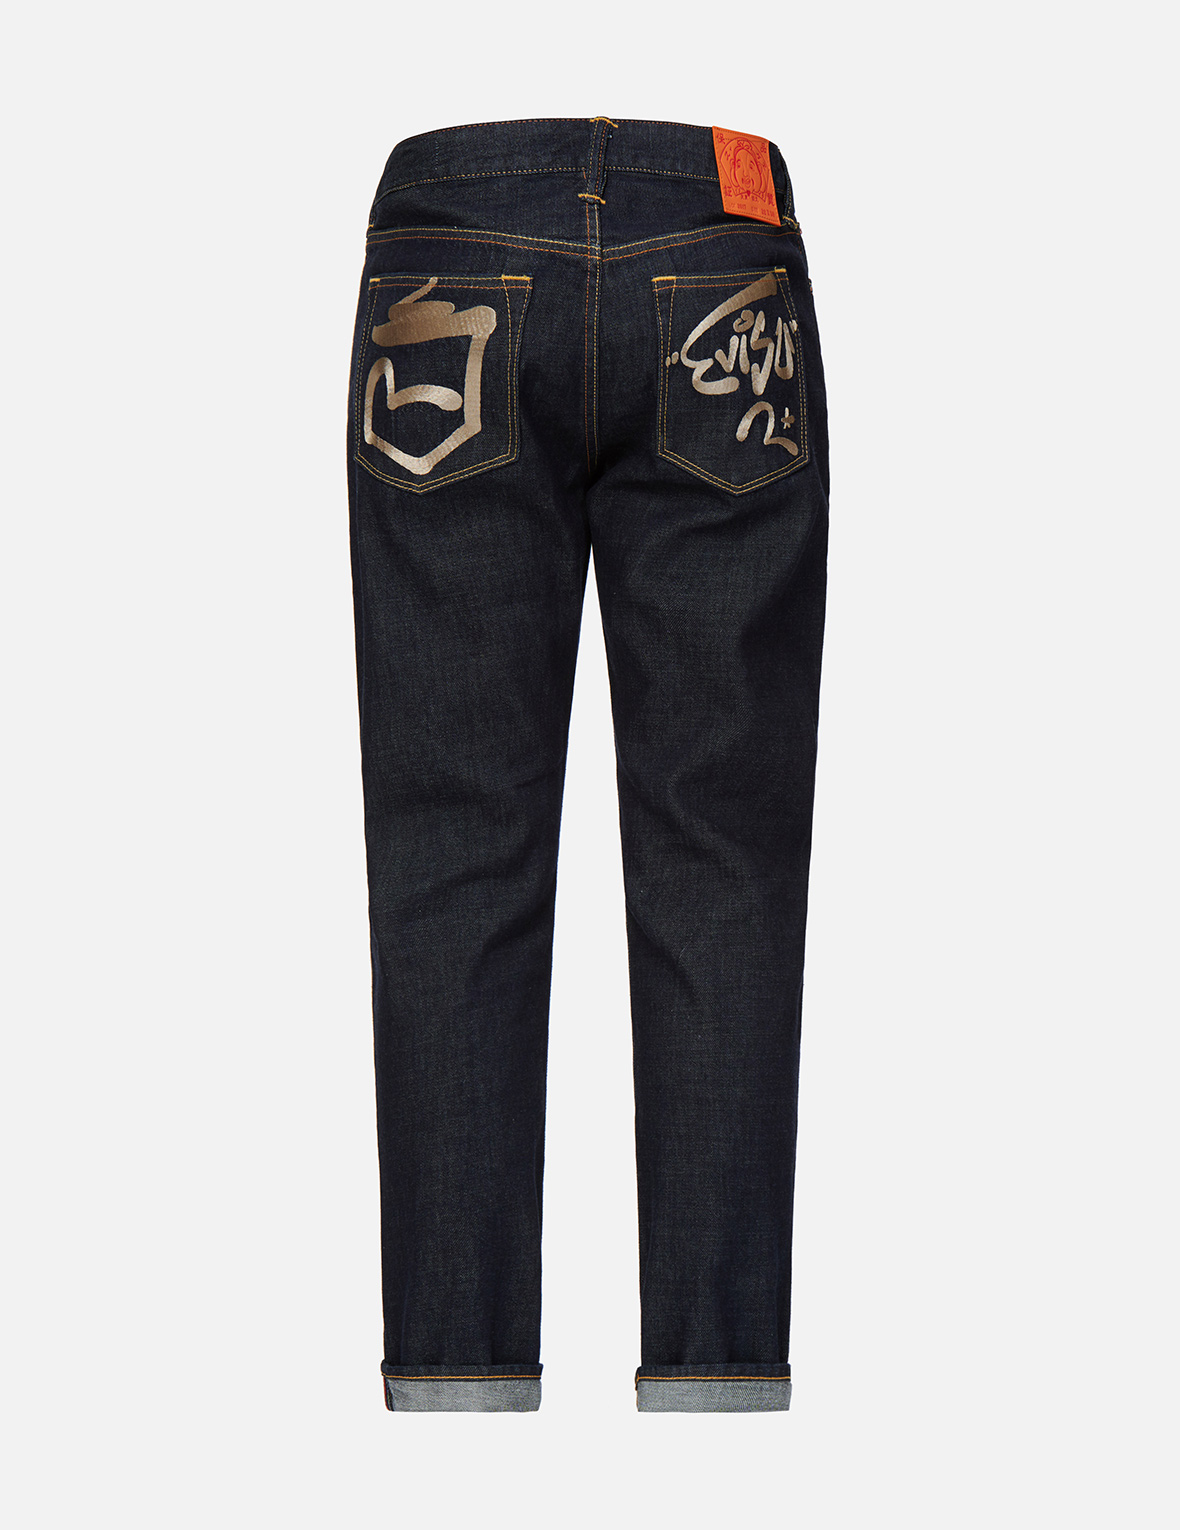 Graffiti Seagull and Logo Embroidered Carrot Fit Jeans #2017